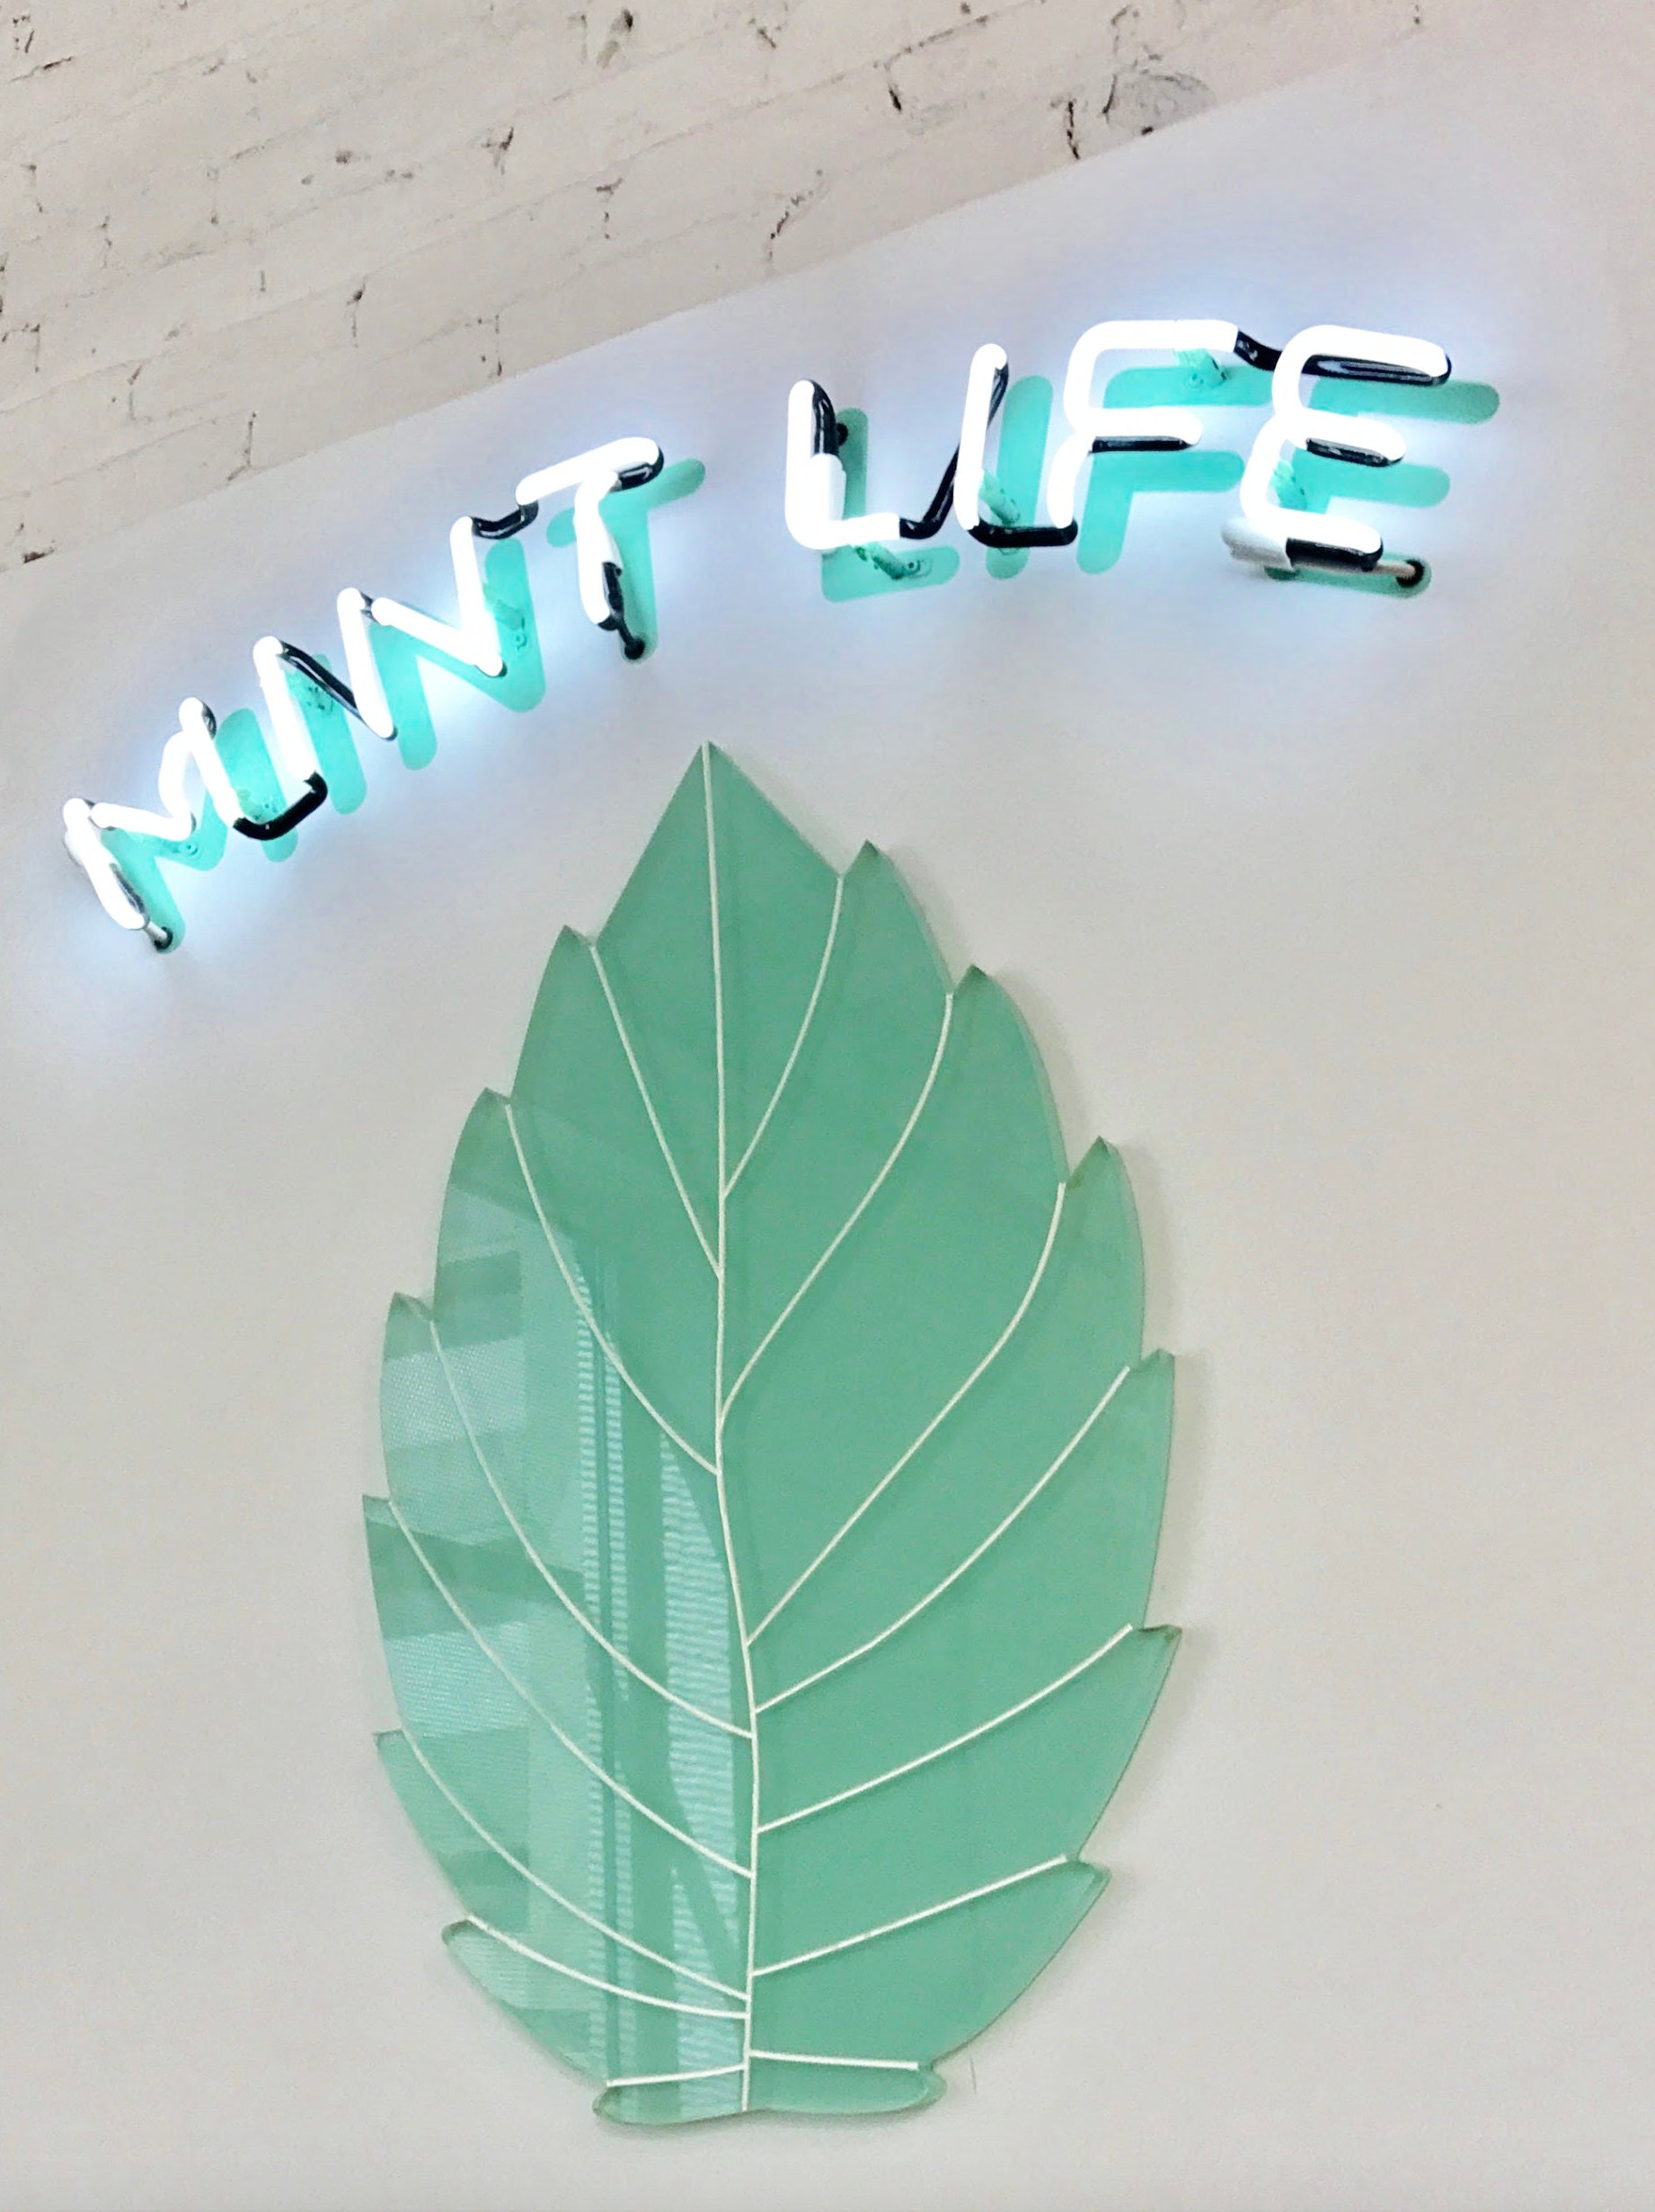 It is a Mint life